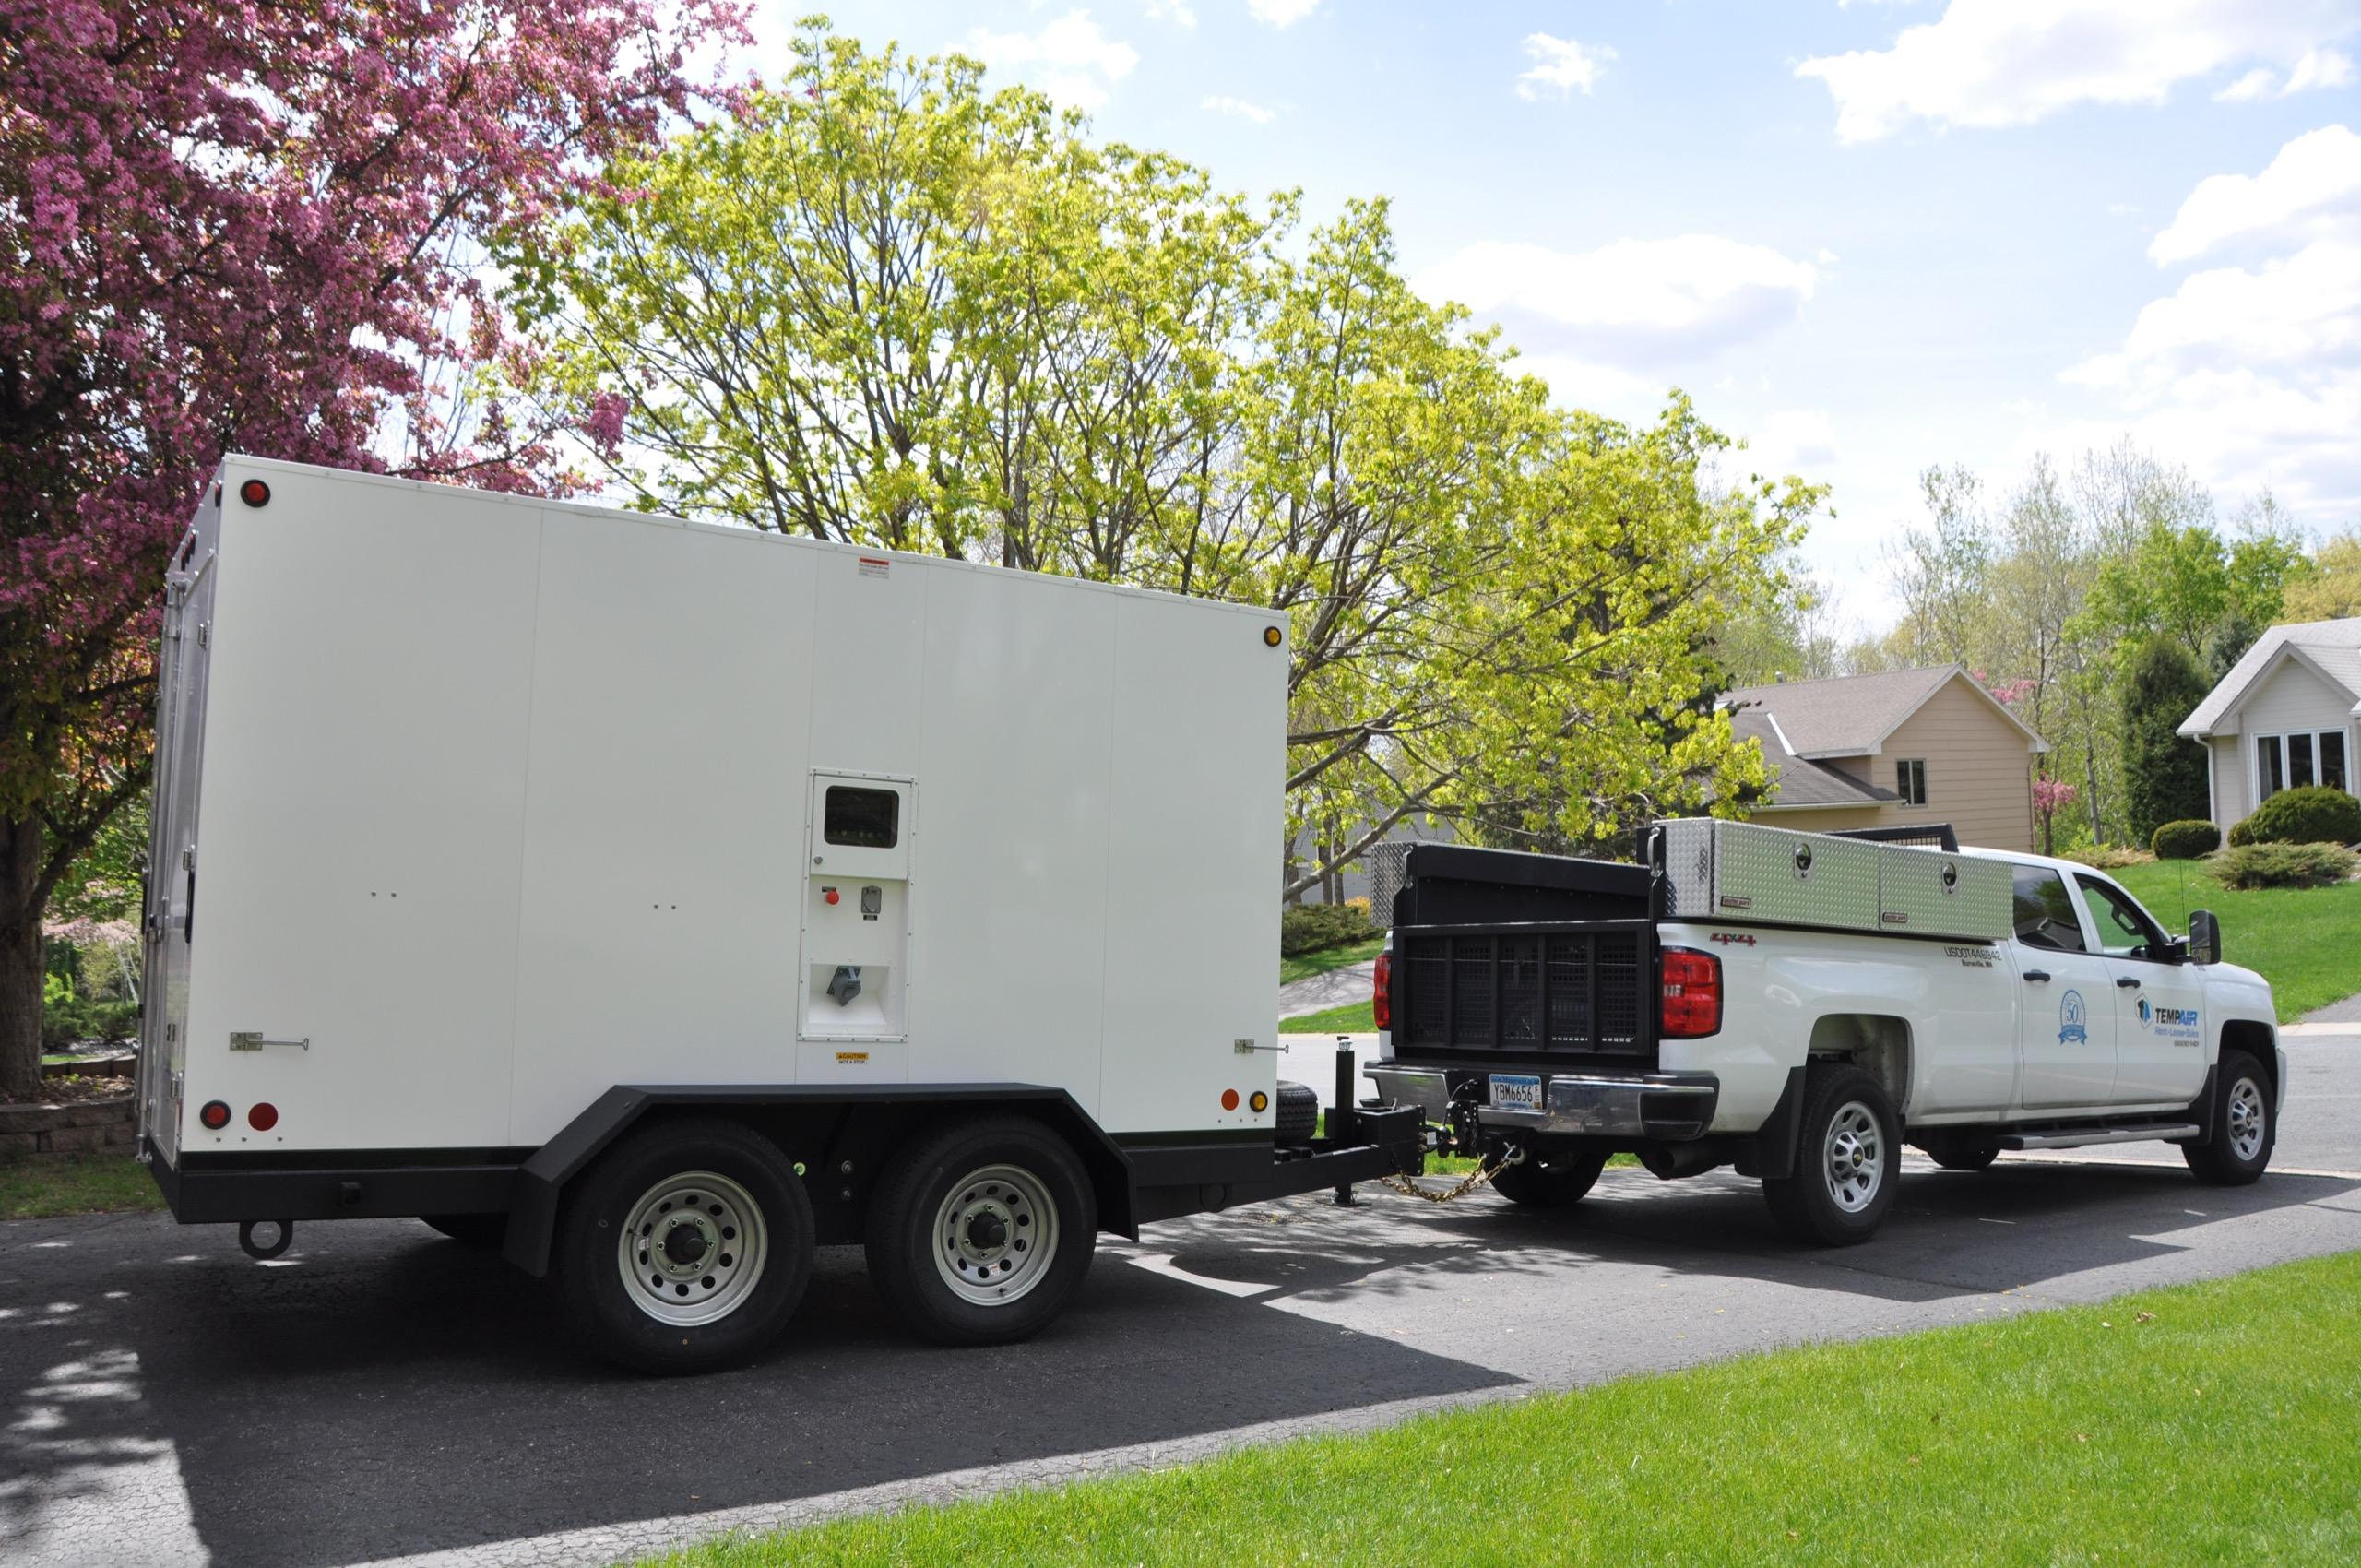 A truck and generator wait ready to take off